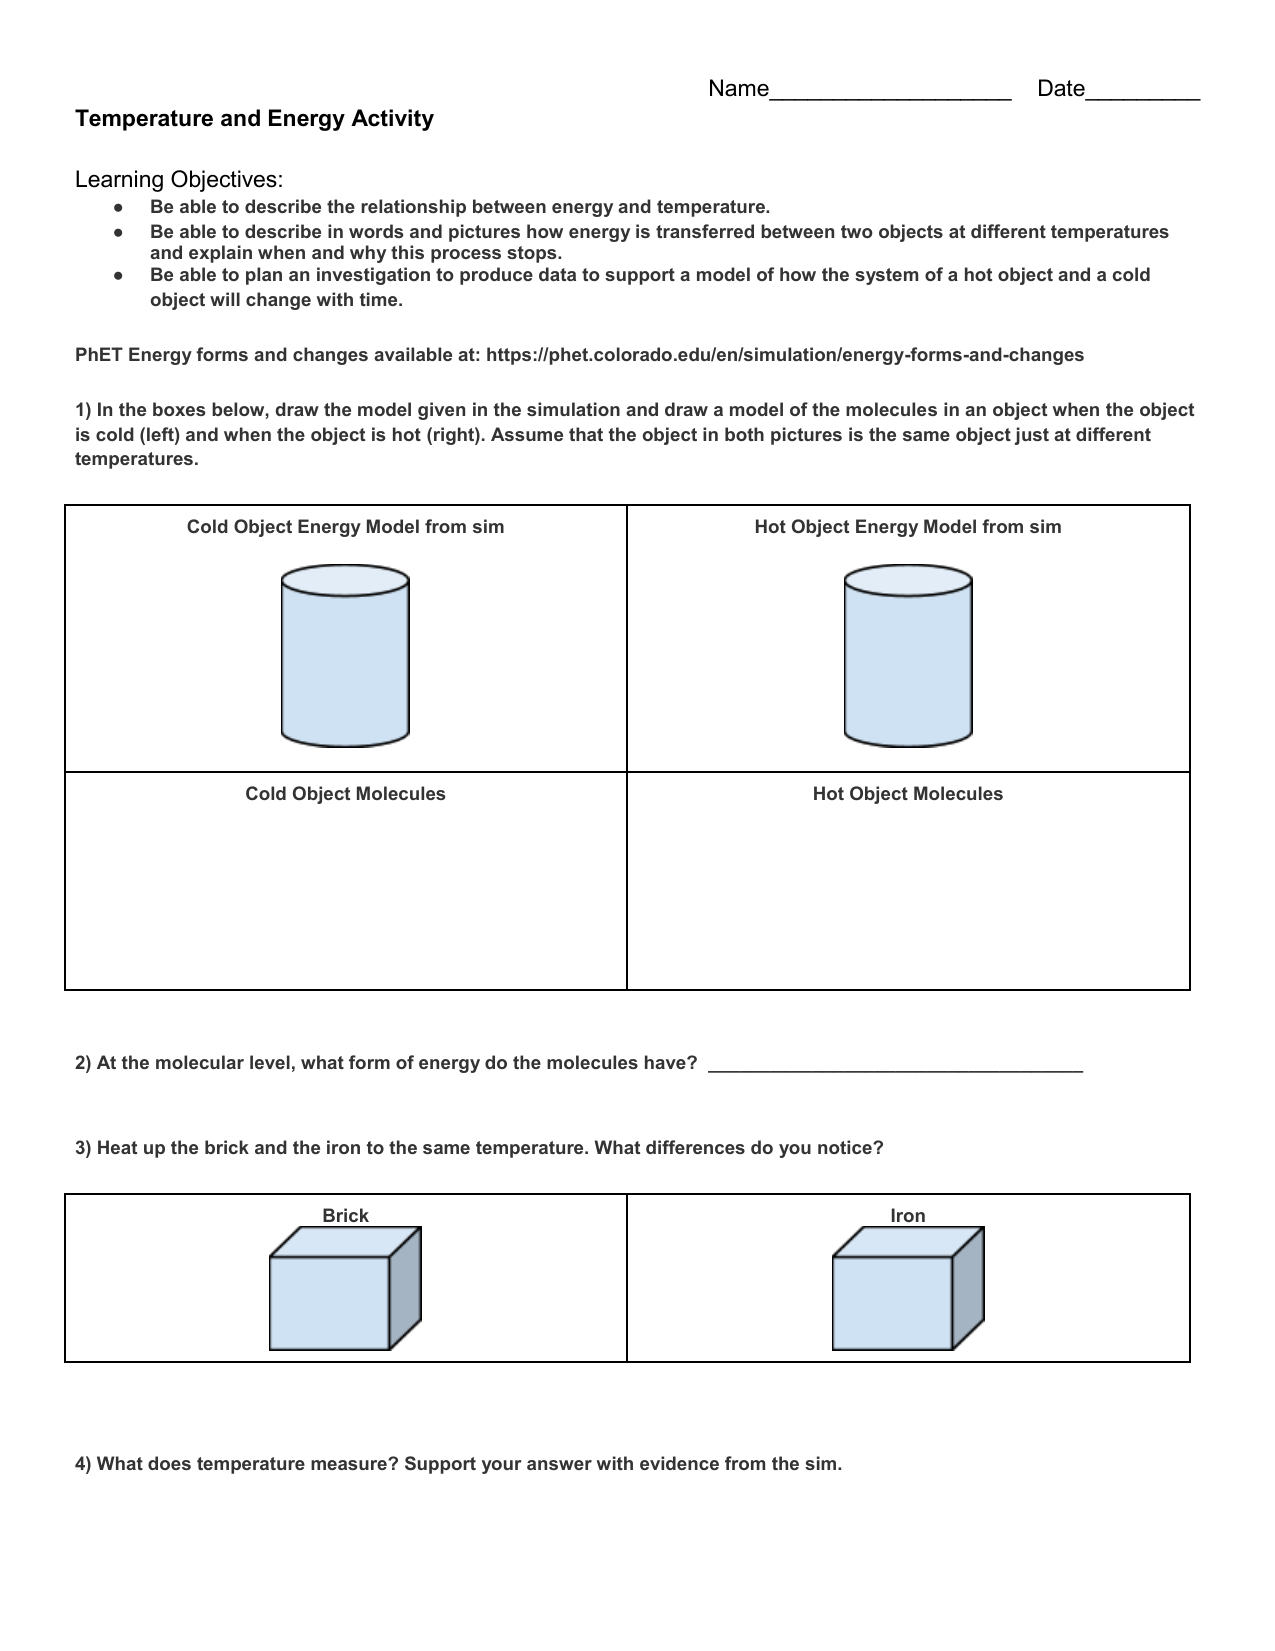 Temperature and Energy Student Handout